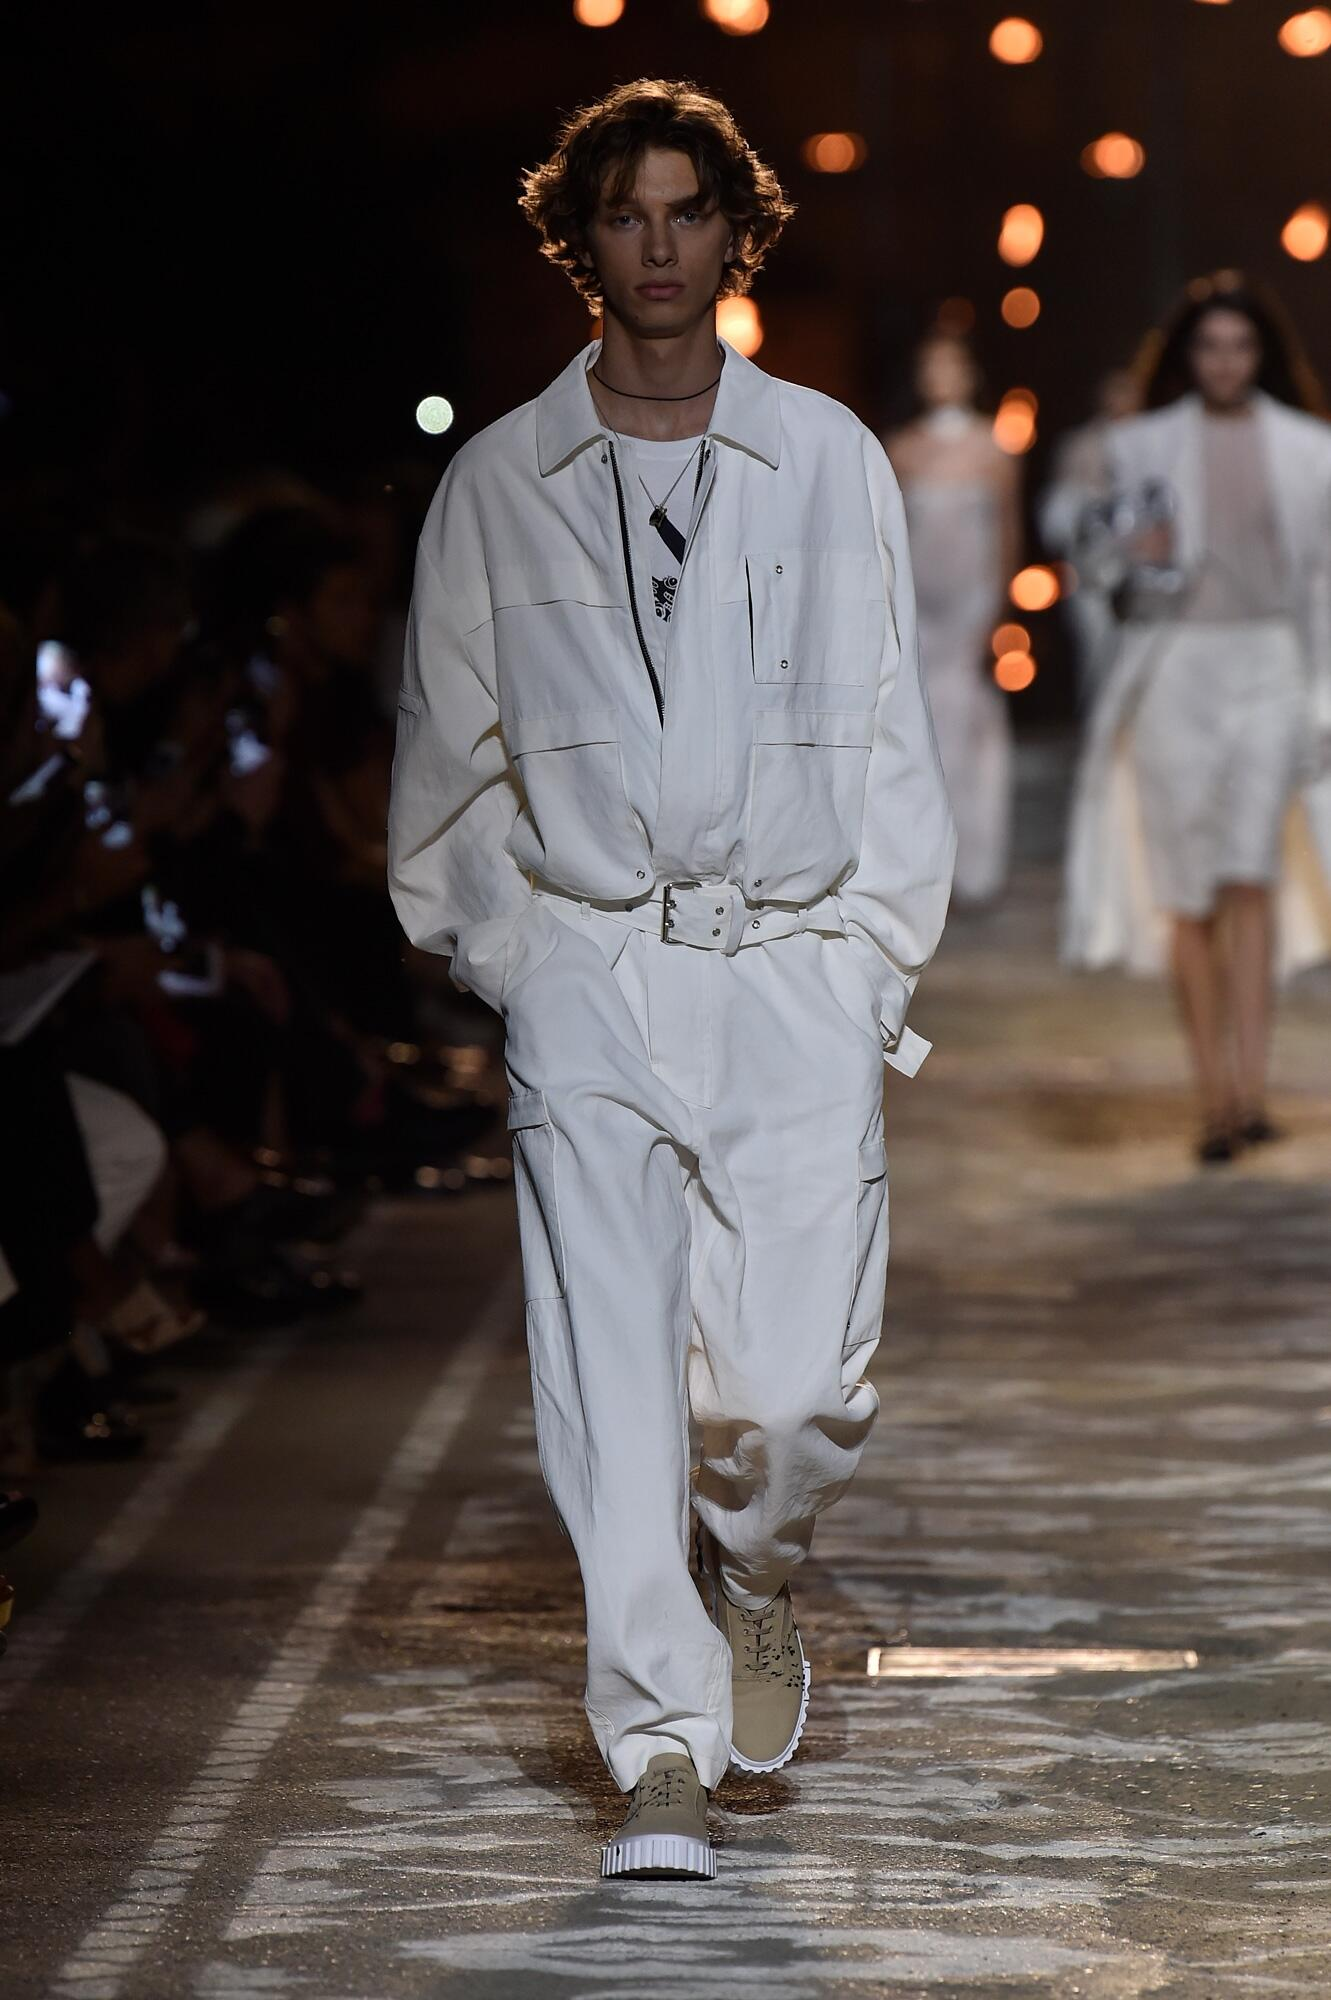 Man SS 2018 Fashion Show Hugo